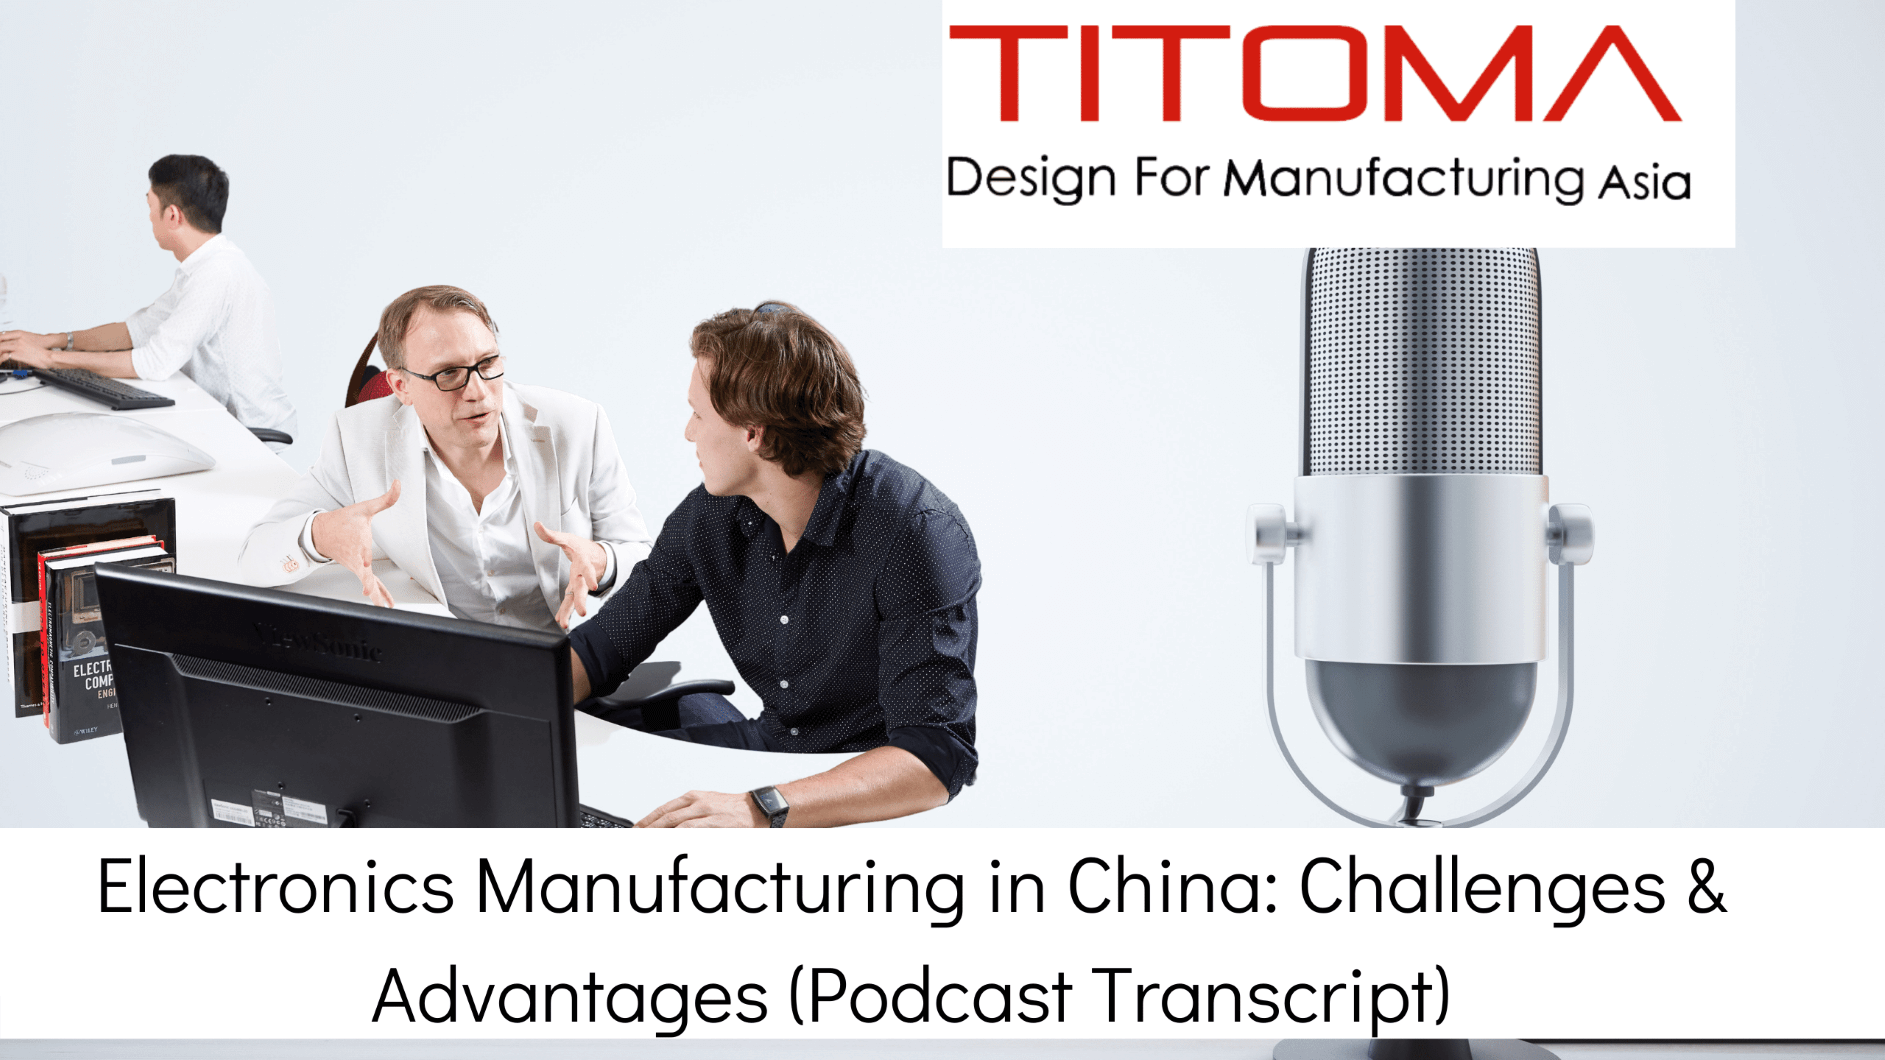 electronics manufacturing in China, challenges and advantages